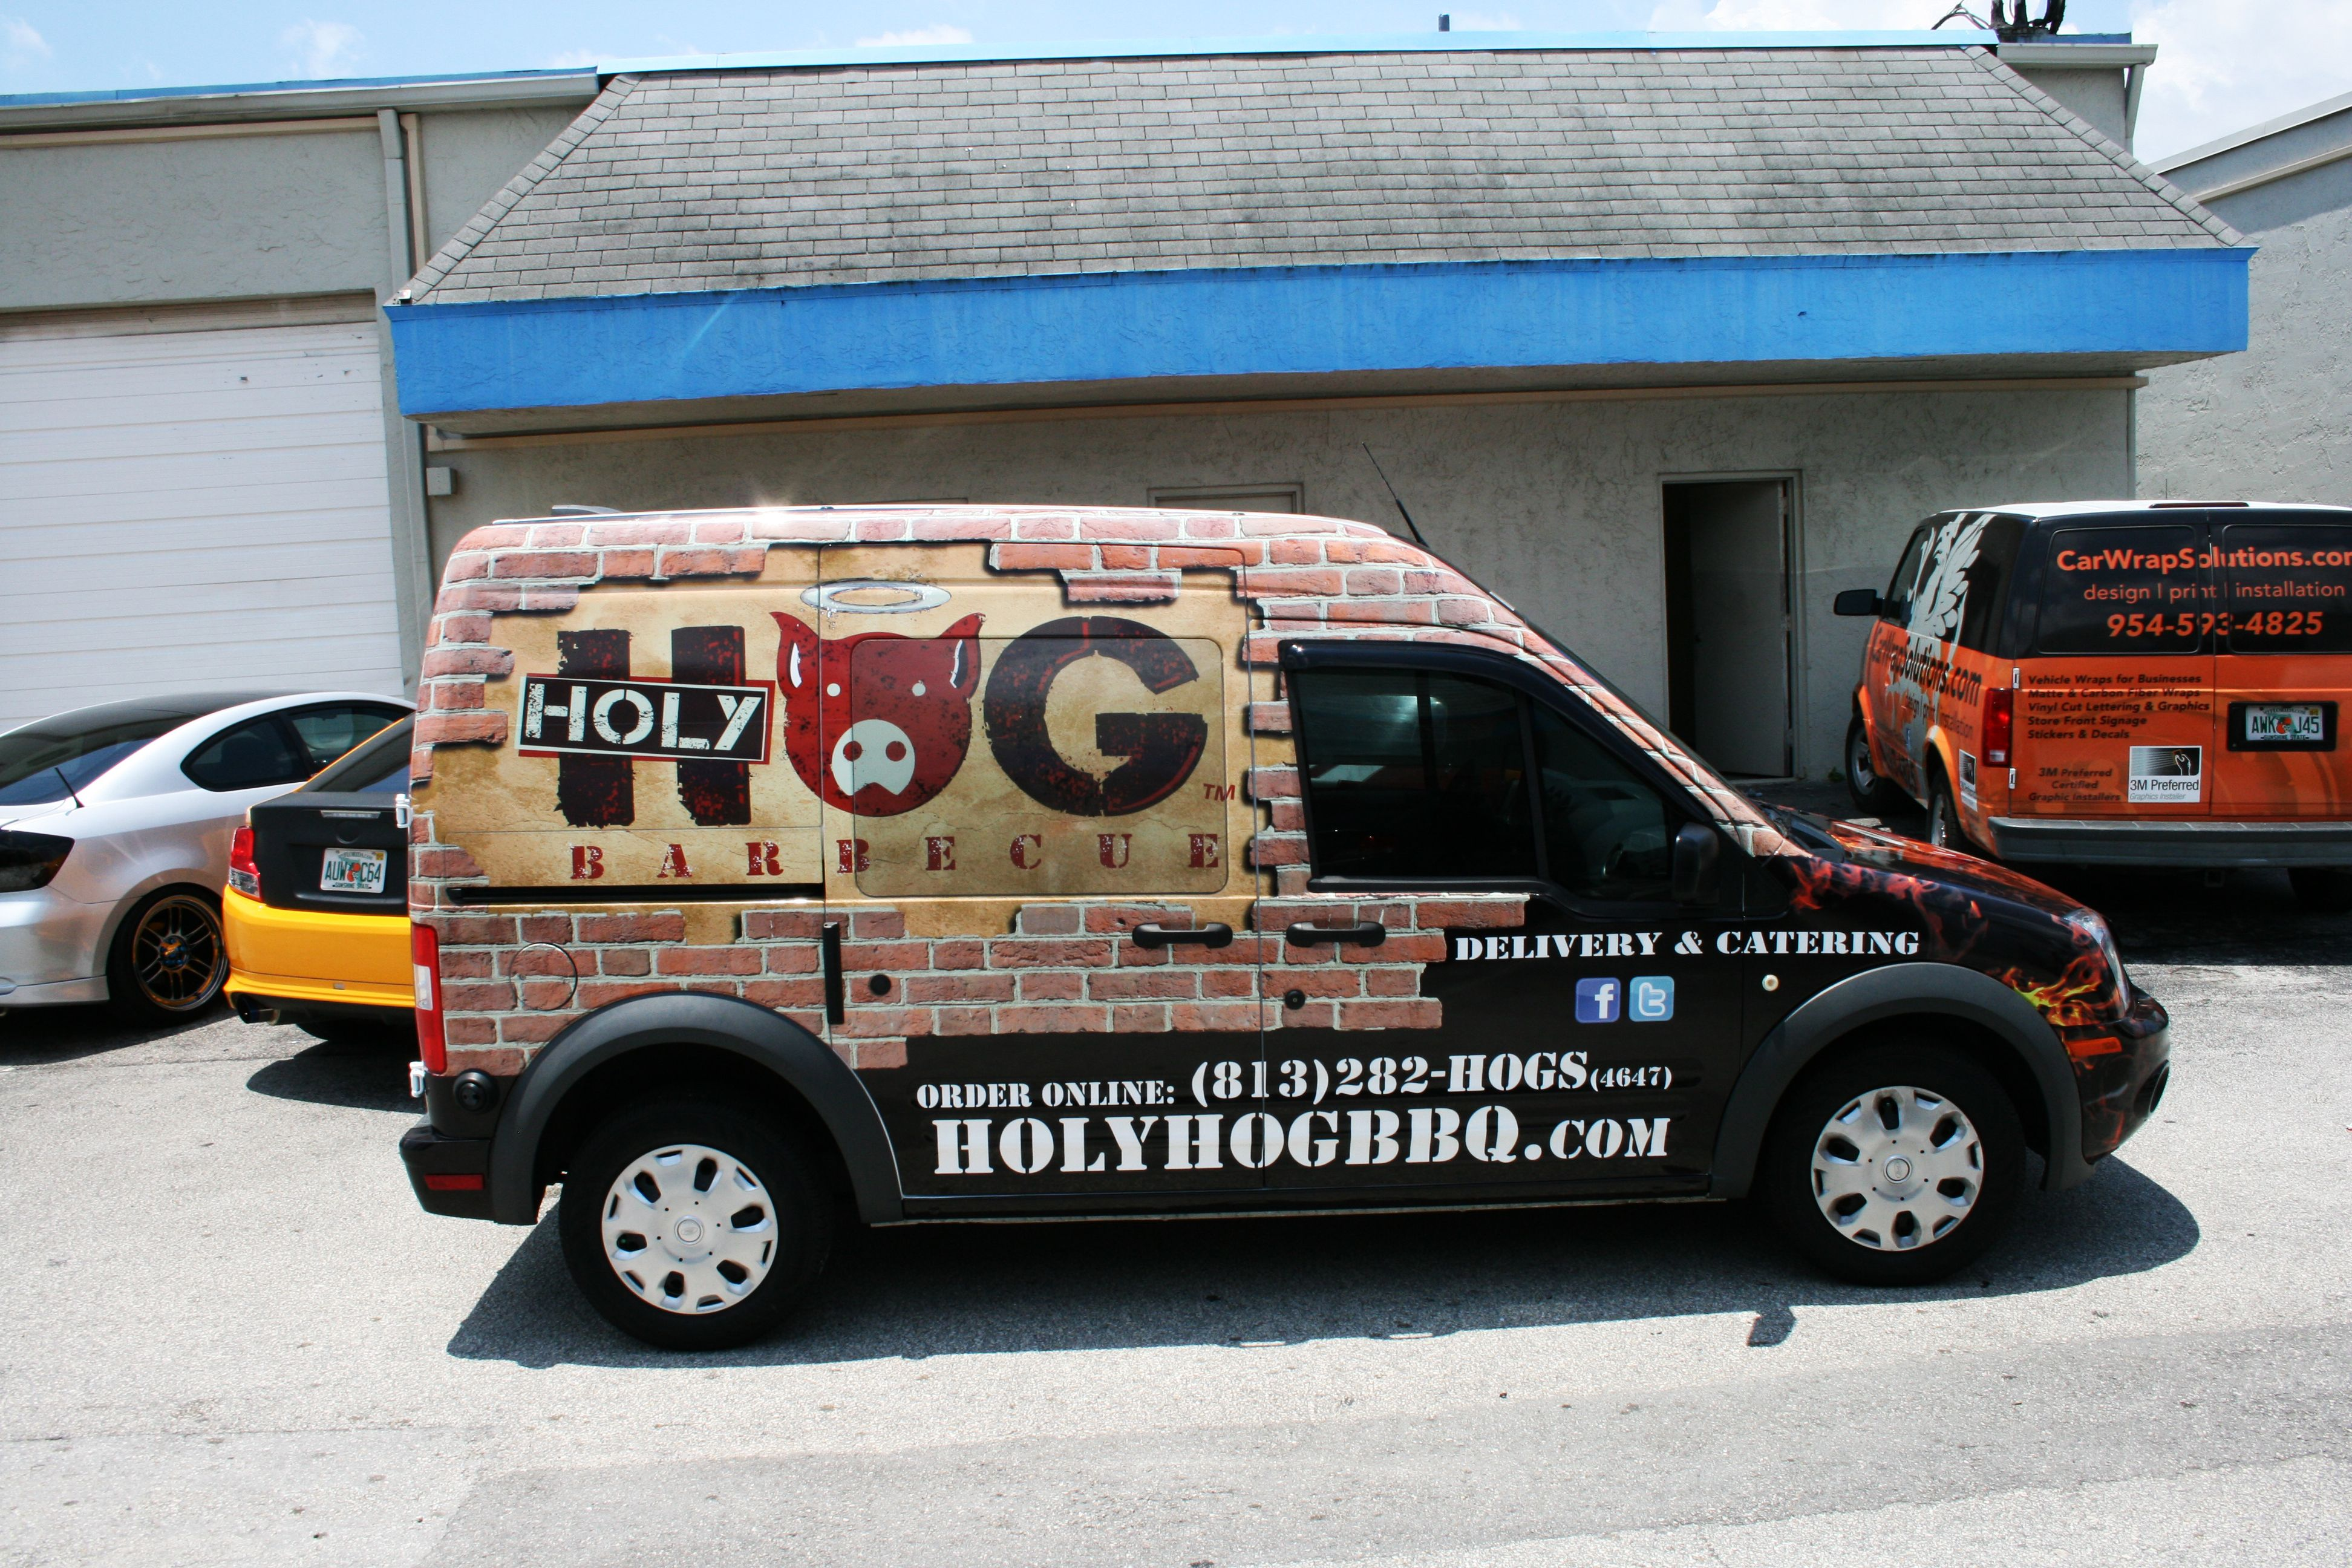 Ford transit connect van vehicle wrap tampa florida for holy hog barbecue restaurant http